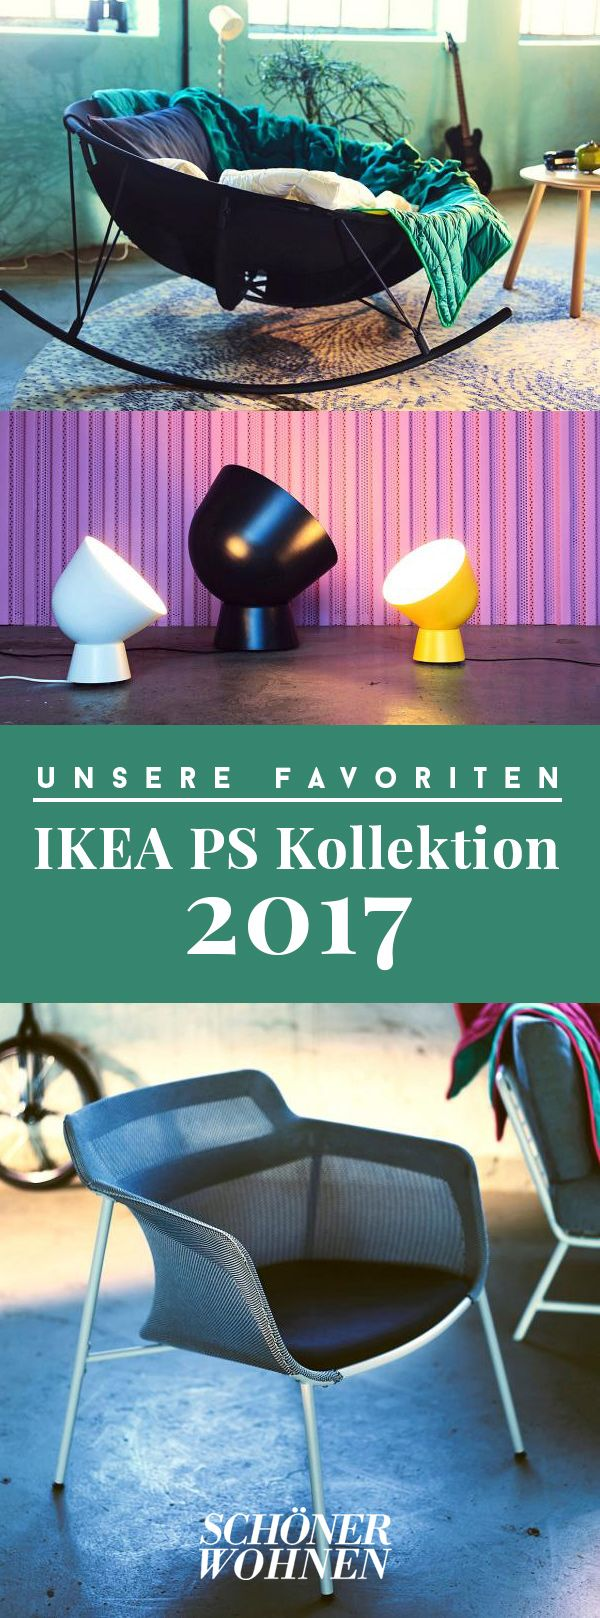 ikeas neue ps kollektion ikea ps kollektion 2017 pinterest ikea wohnen und m bel. Black Bedroom Furniture Sets. Home Design Ideas